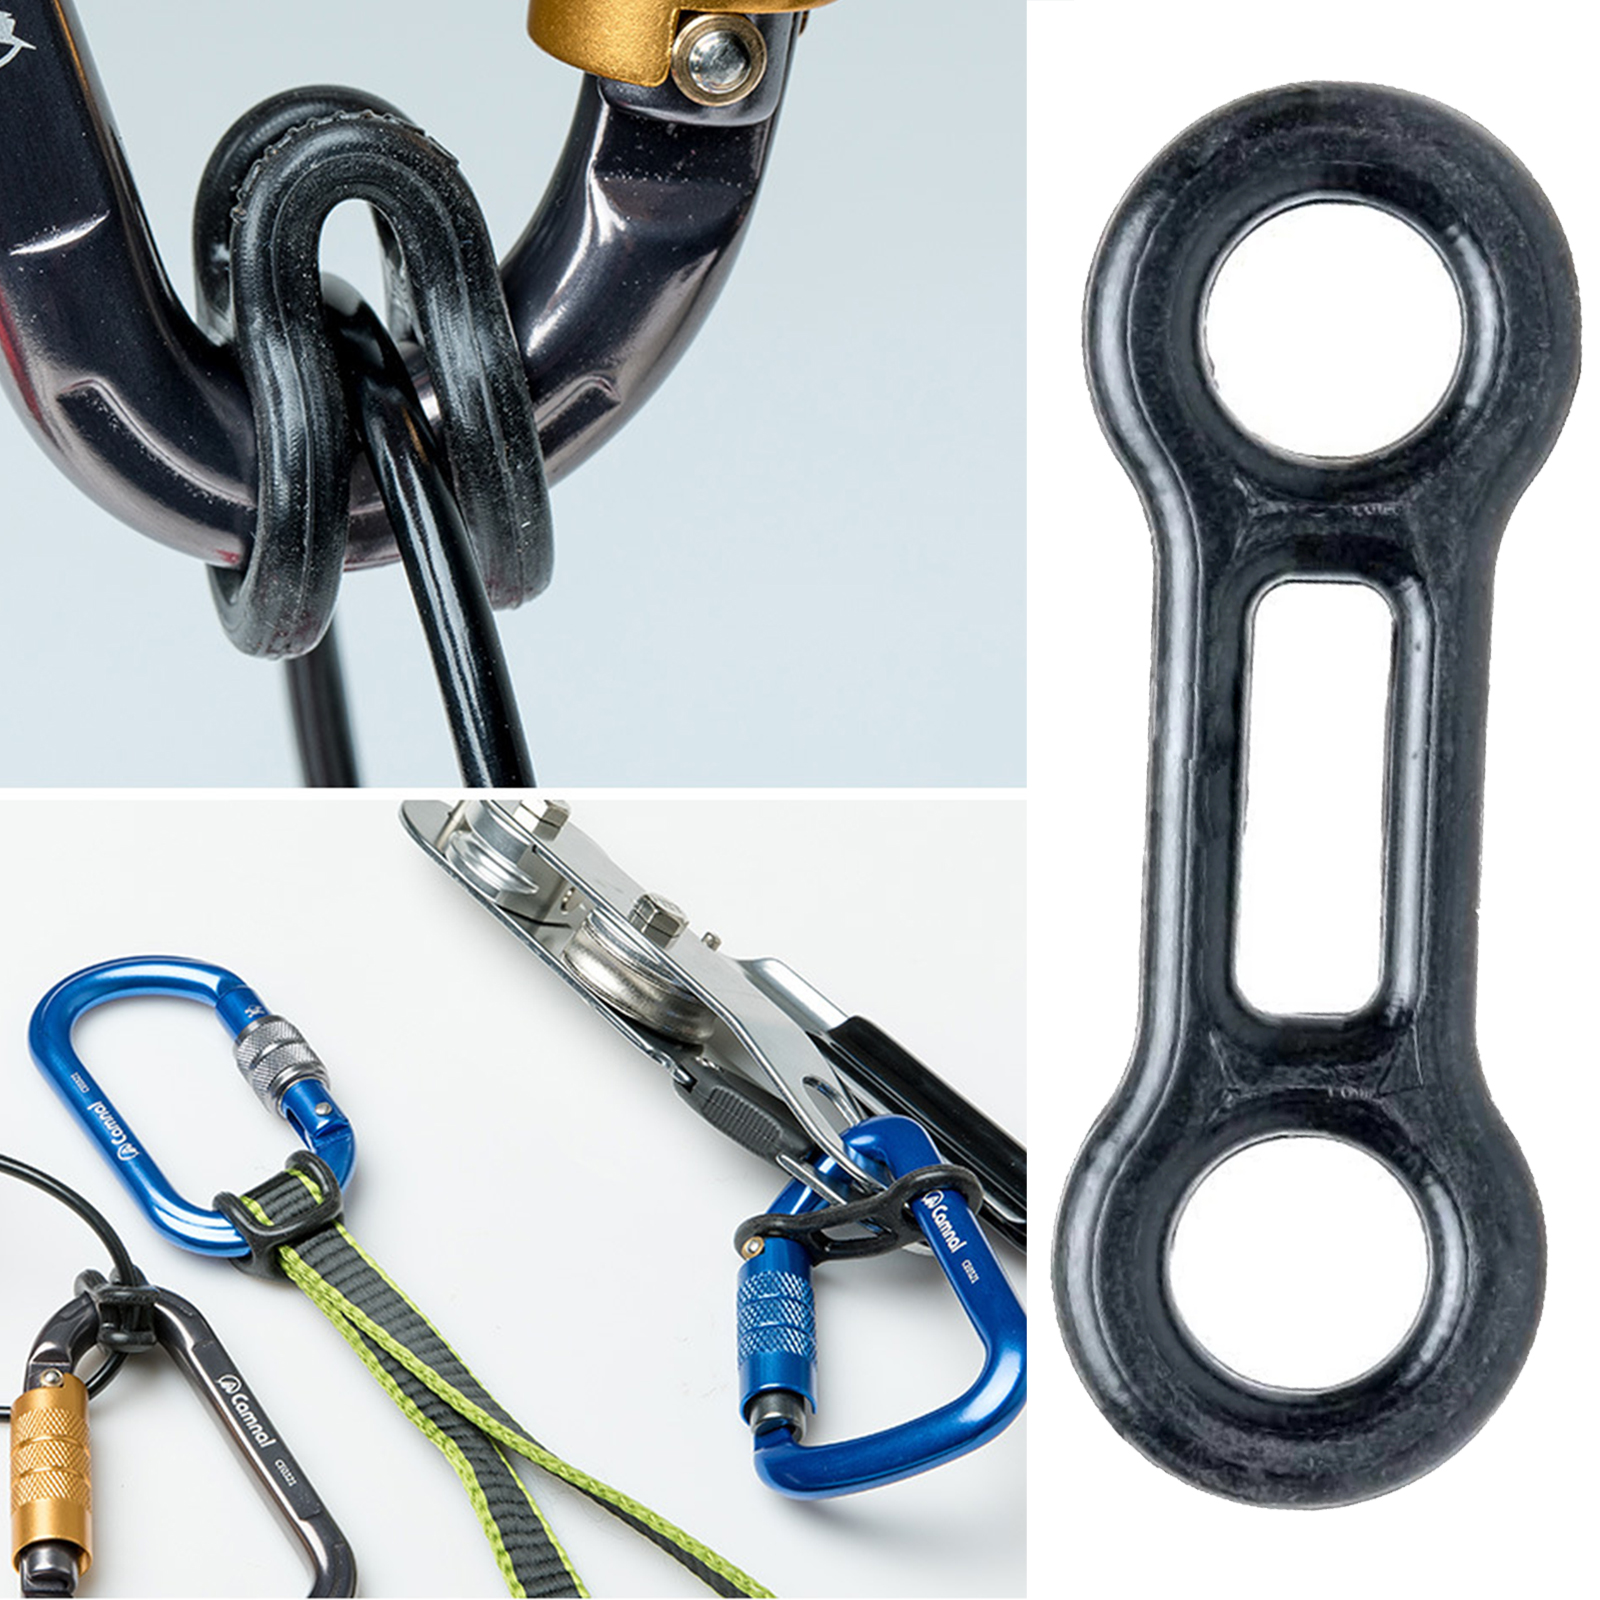 Carabiner Rope Locking Tool Rigging Fixed Climbing Safety Device Climbing Accessories For Man Women